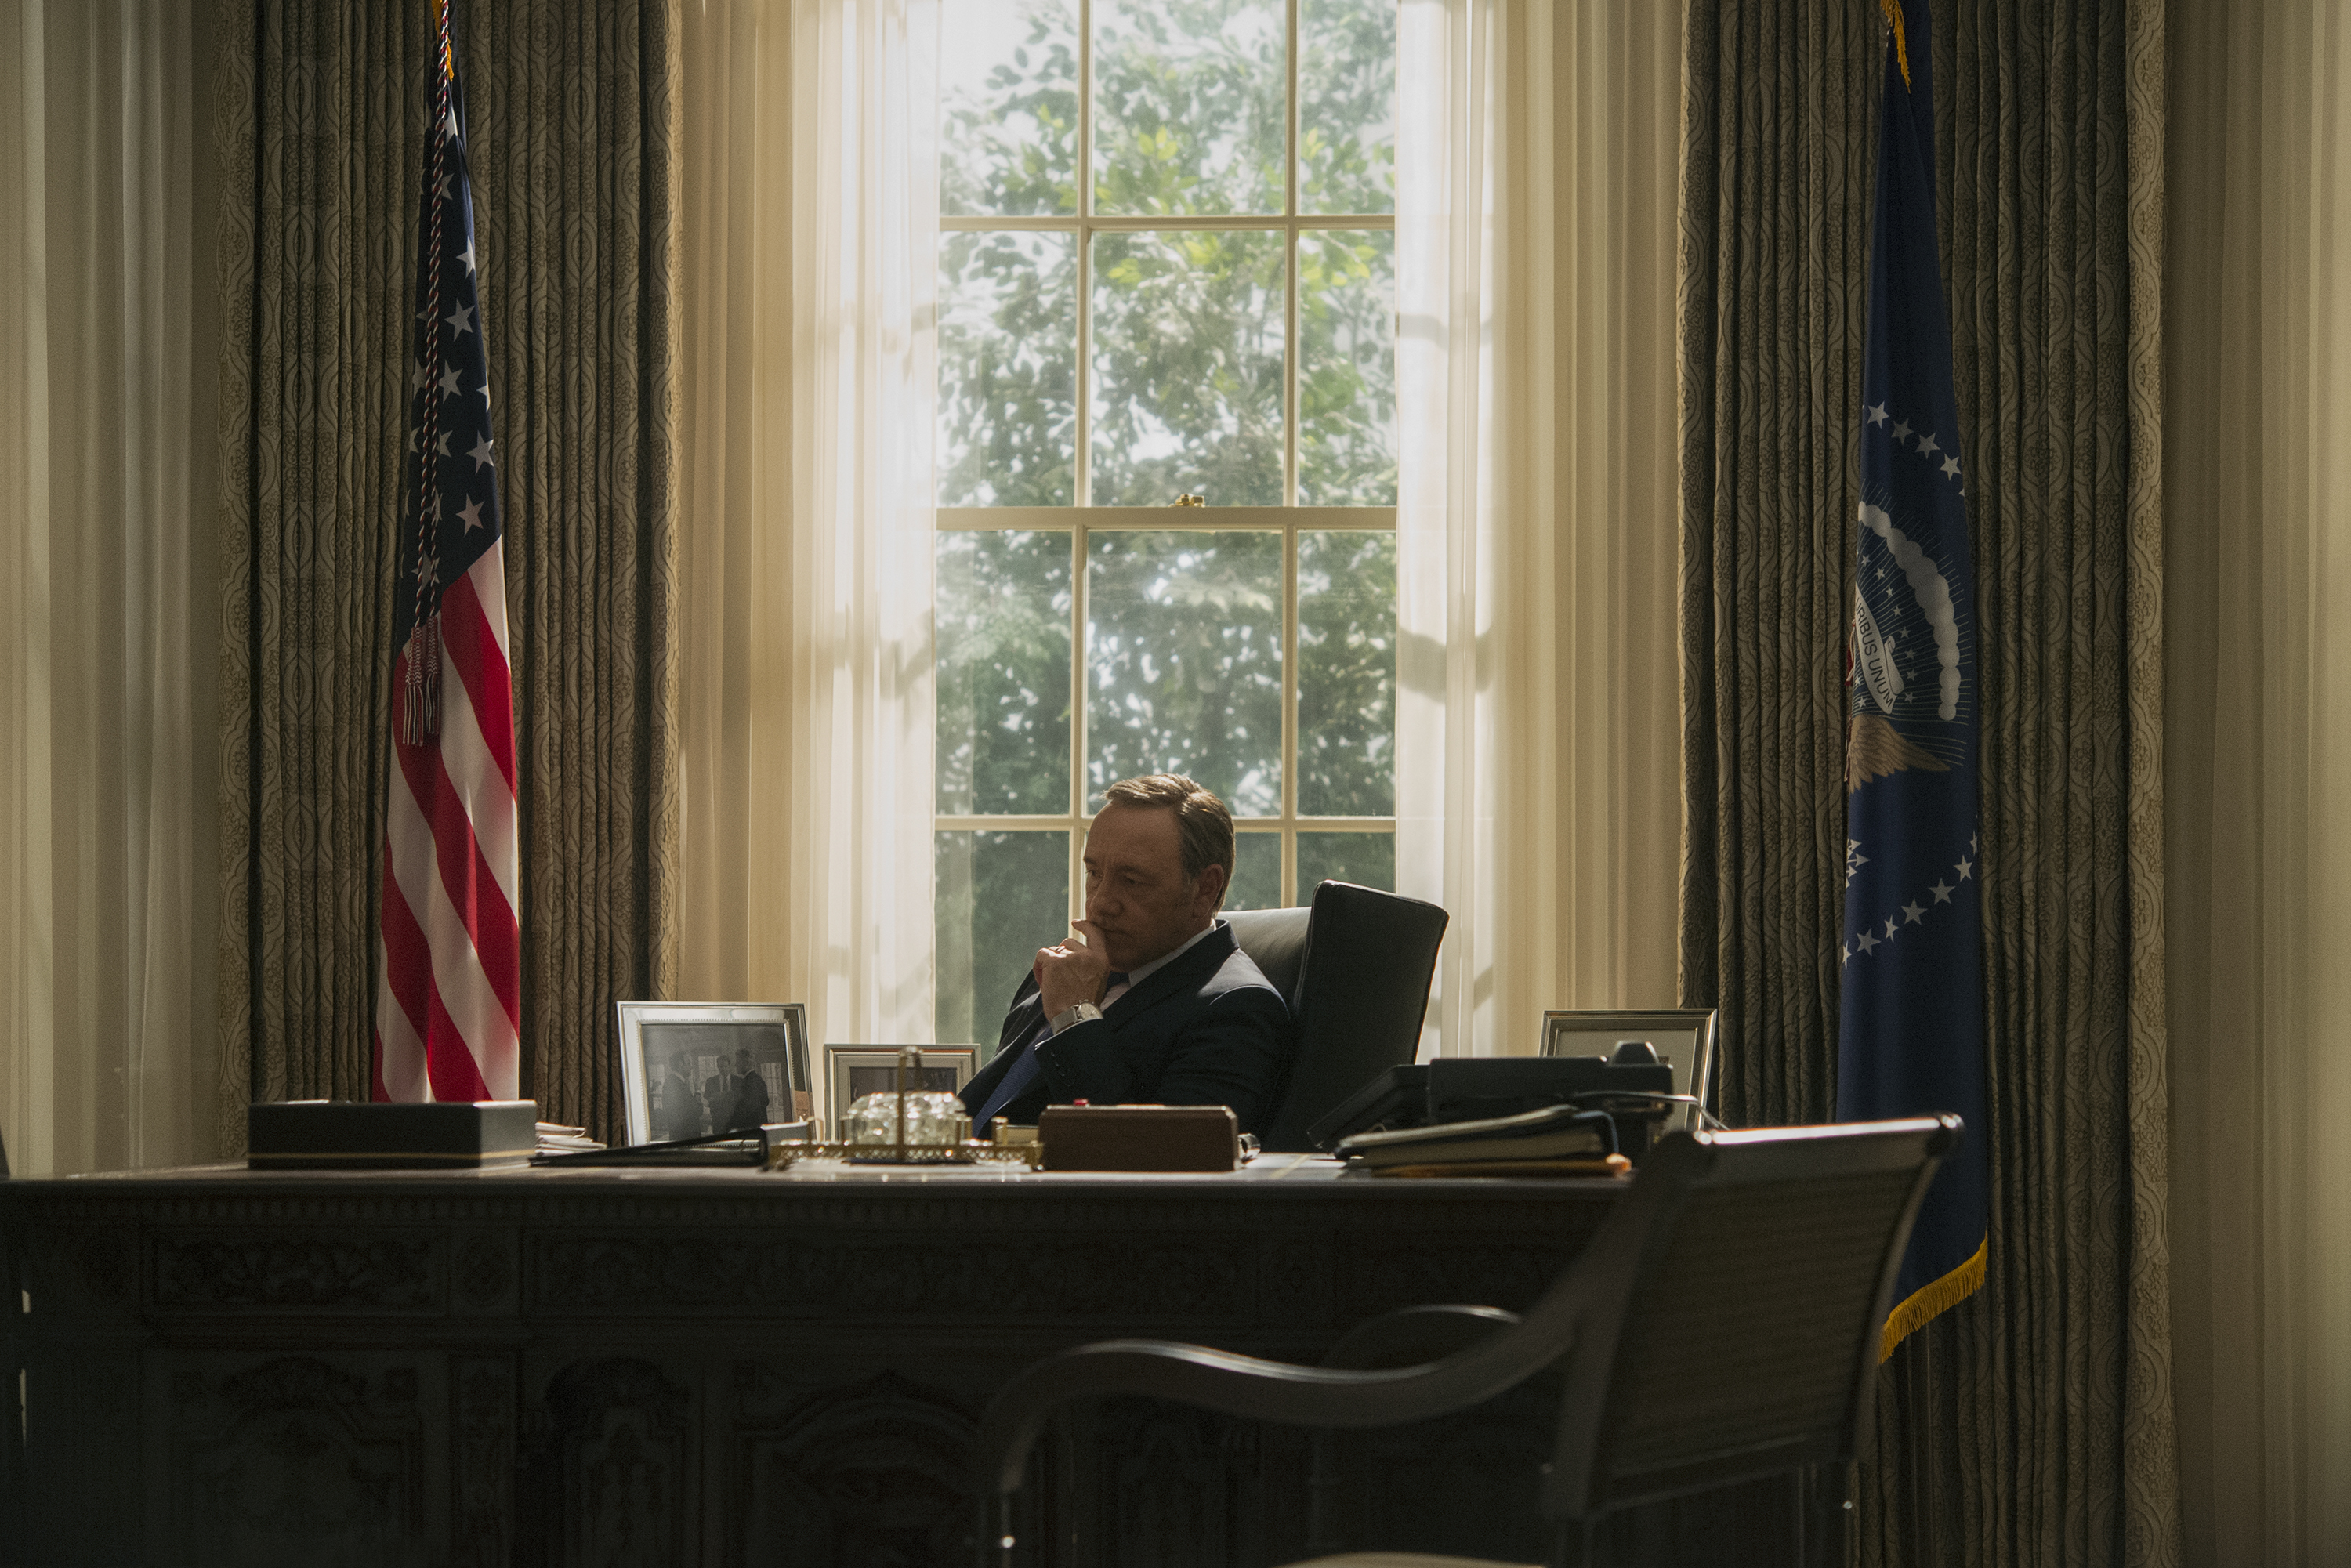 Review House of Cards Season 3 Episode 2 Chapter